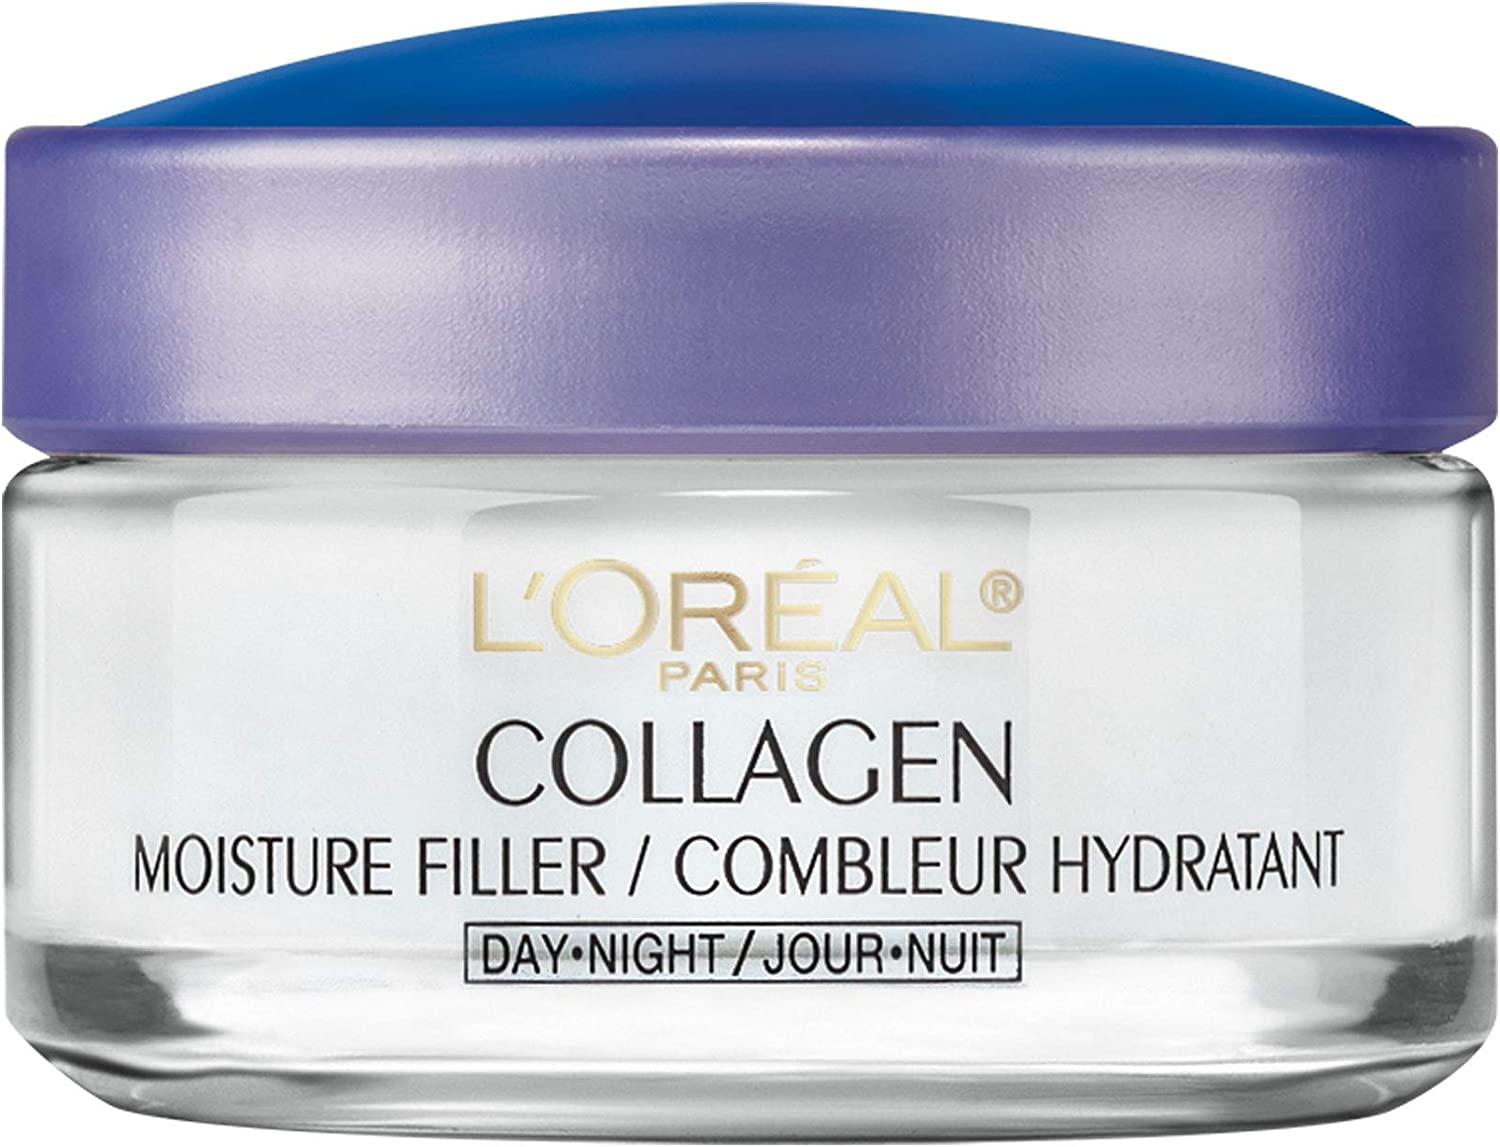 L'Oreal Paris Anti Aging Face Moisturizer Cream with Collagen, Day & Night  Skin Care, Fights Wrinkles + Restores Moisture, 50 mL: Amazon.ca: Beauty